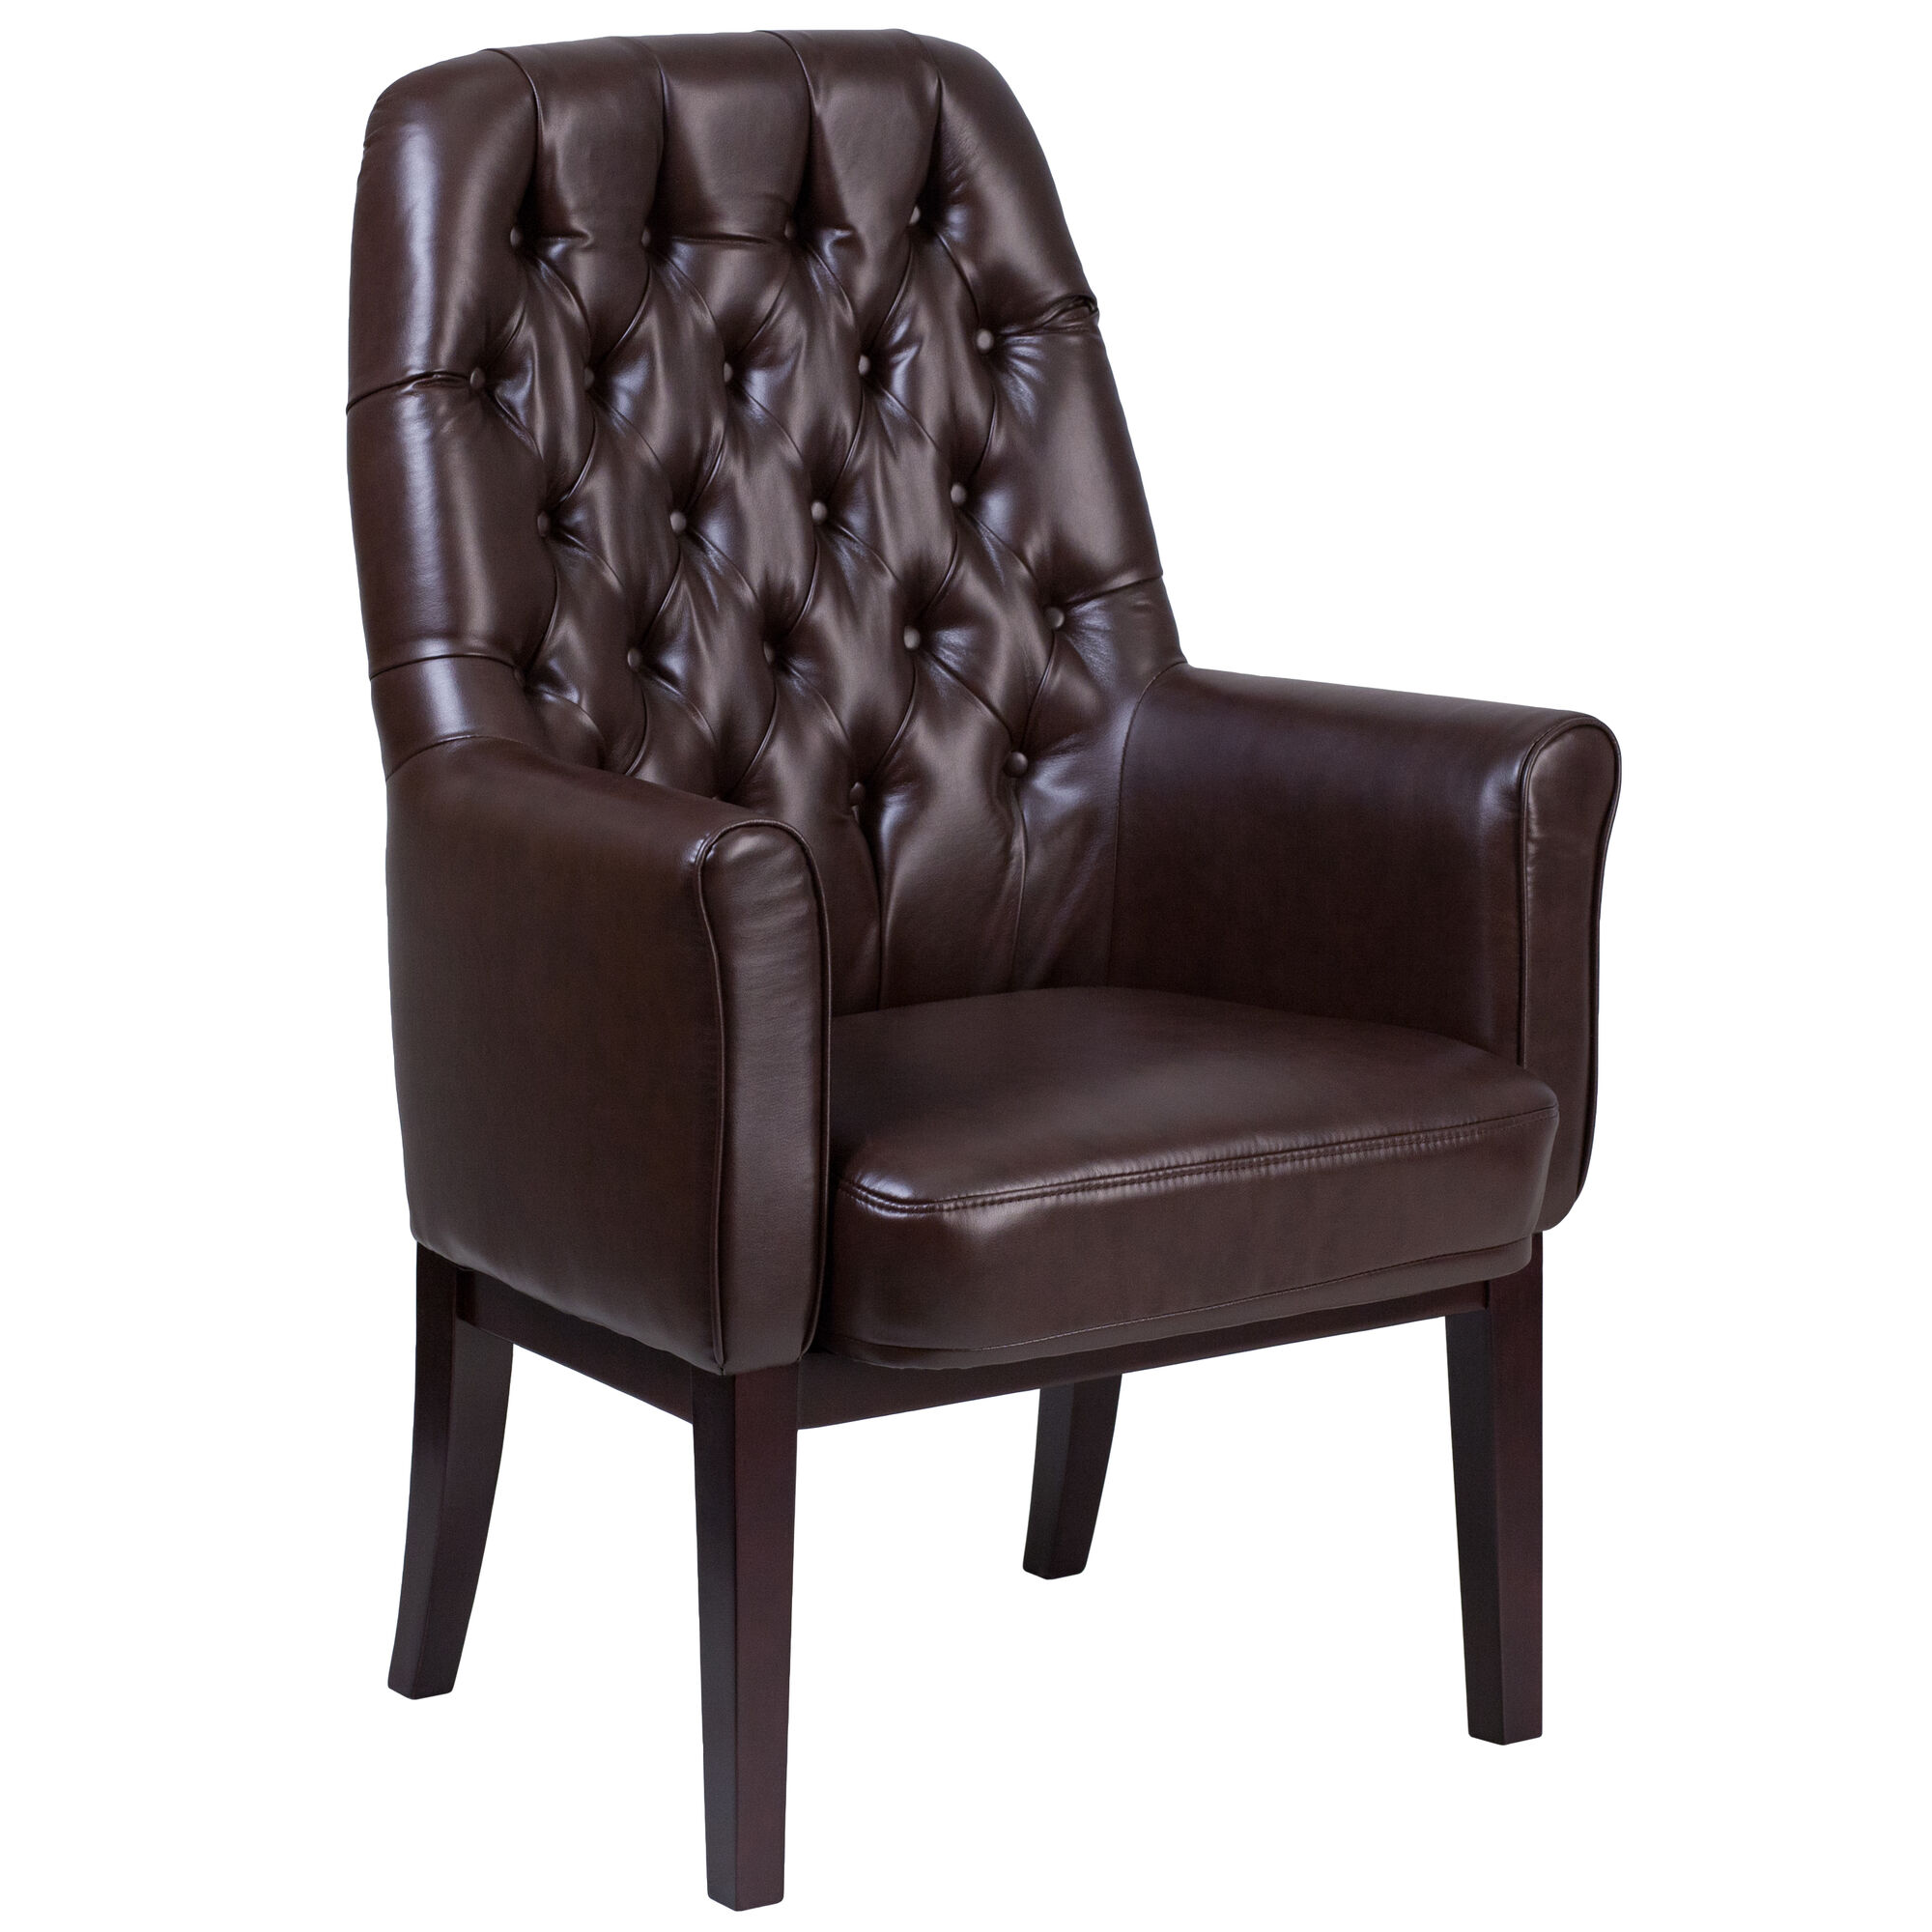 Brown Leather Side Chair Bt 444 Sd Bn Gg Bizchair Com